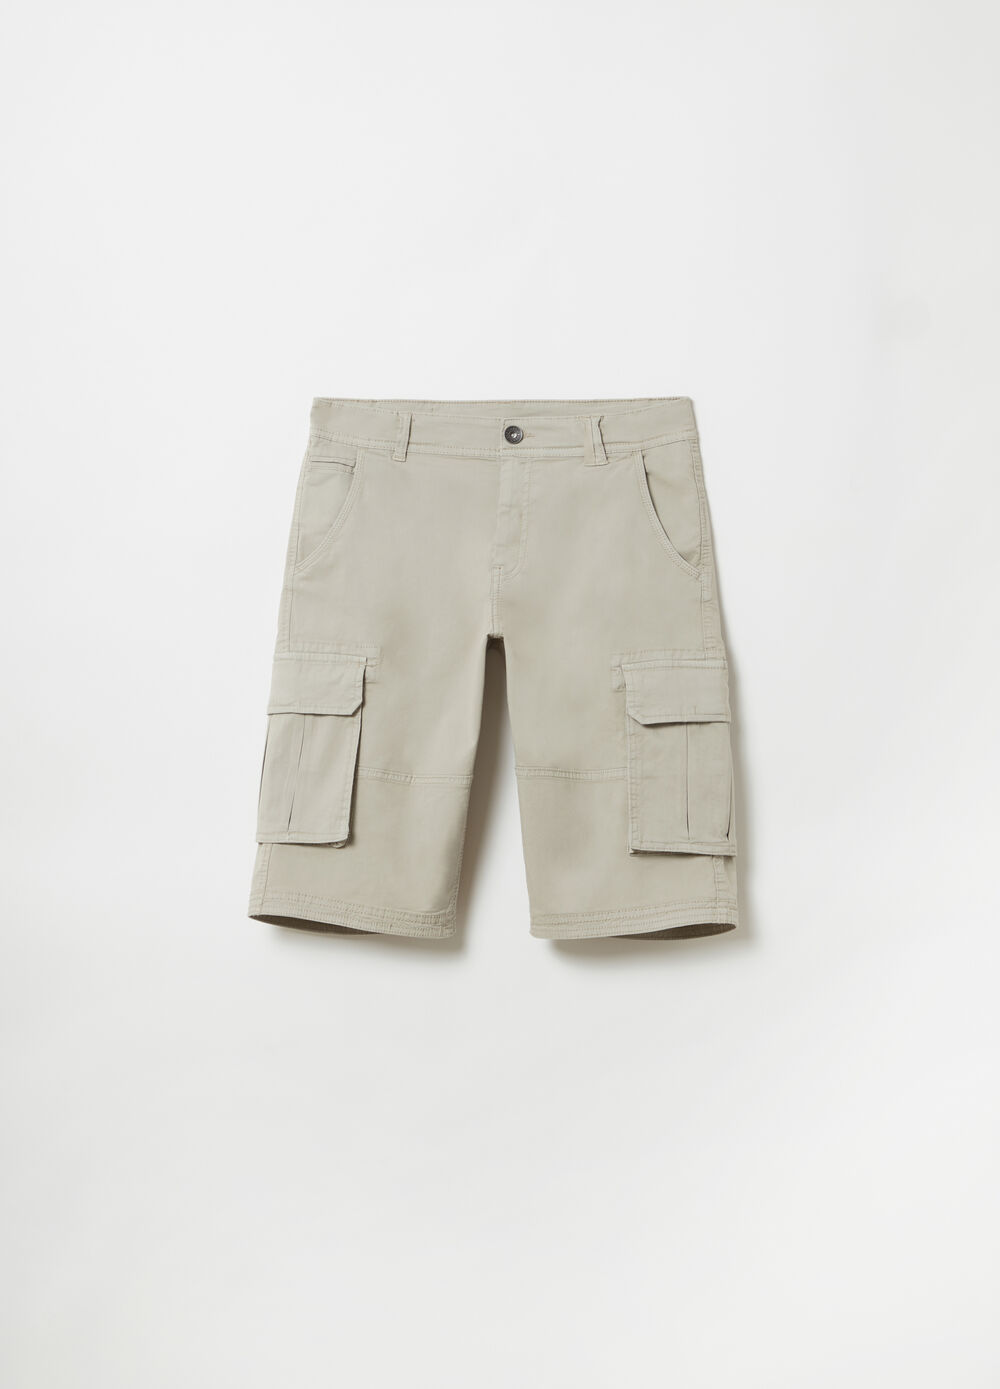 Stretch cargo Bermuda shorts with pockets and large pockets